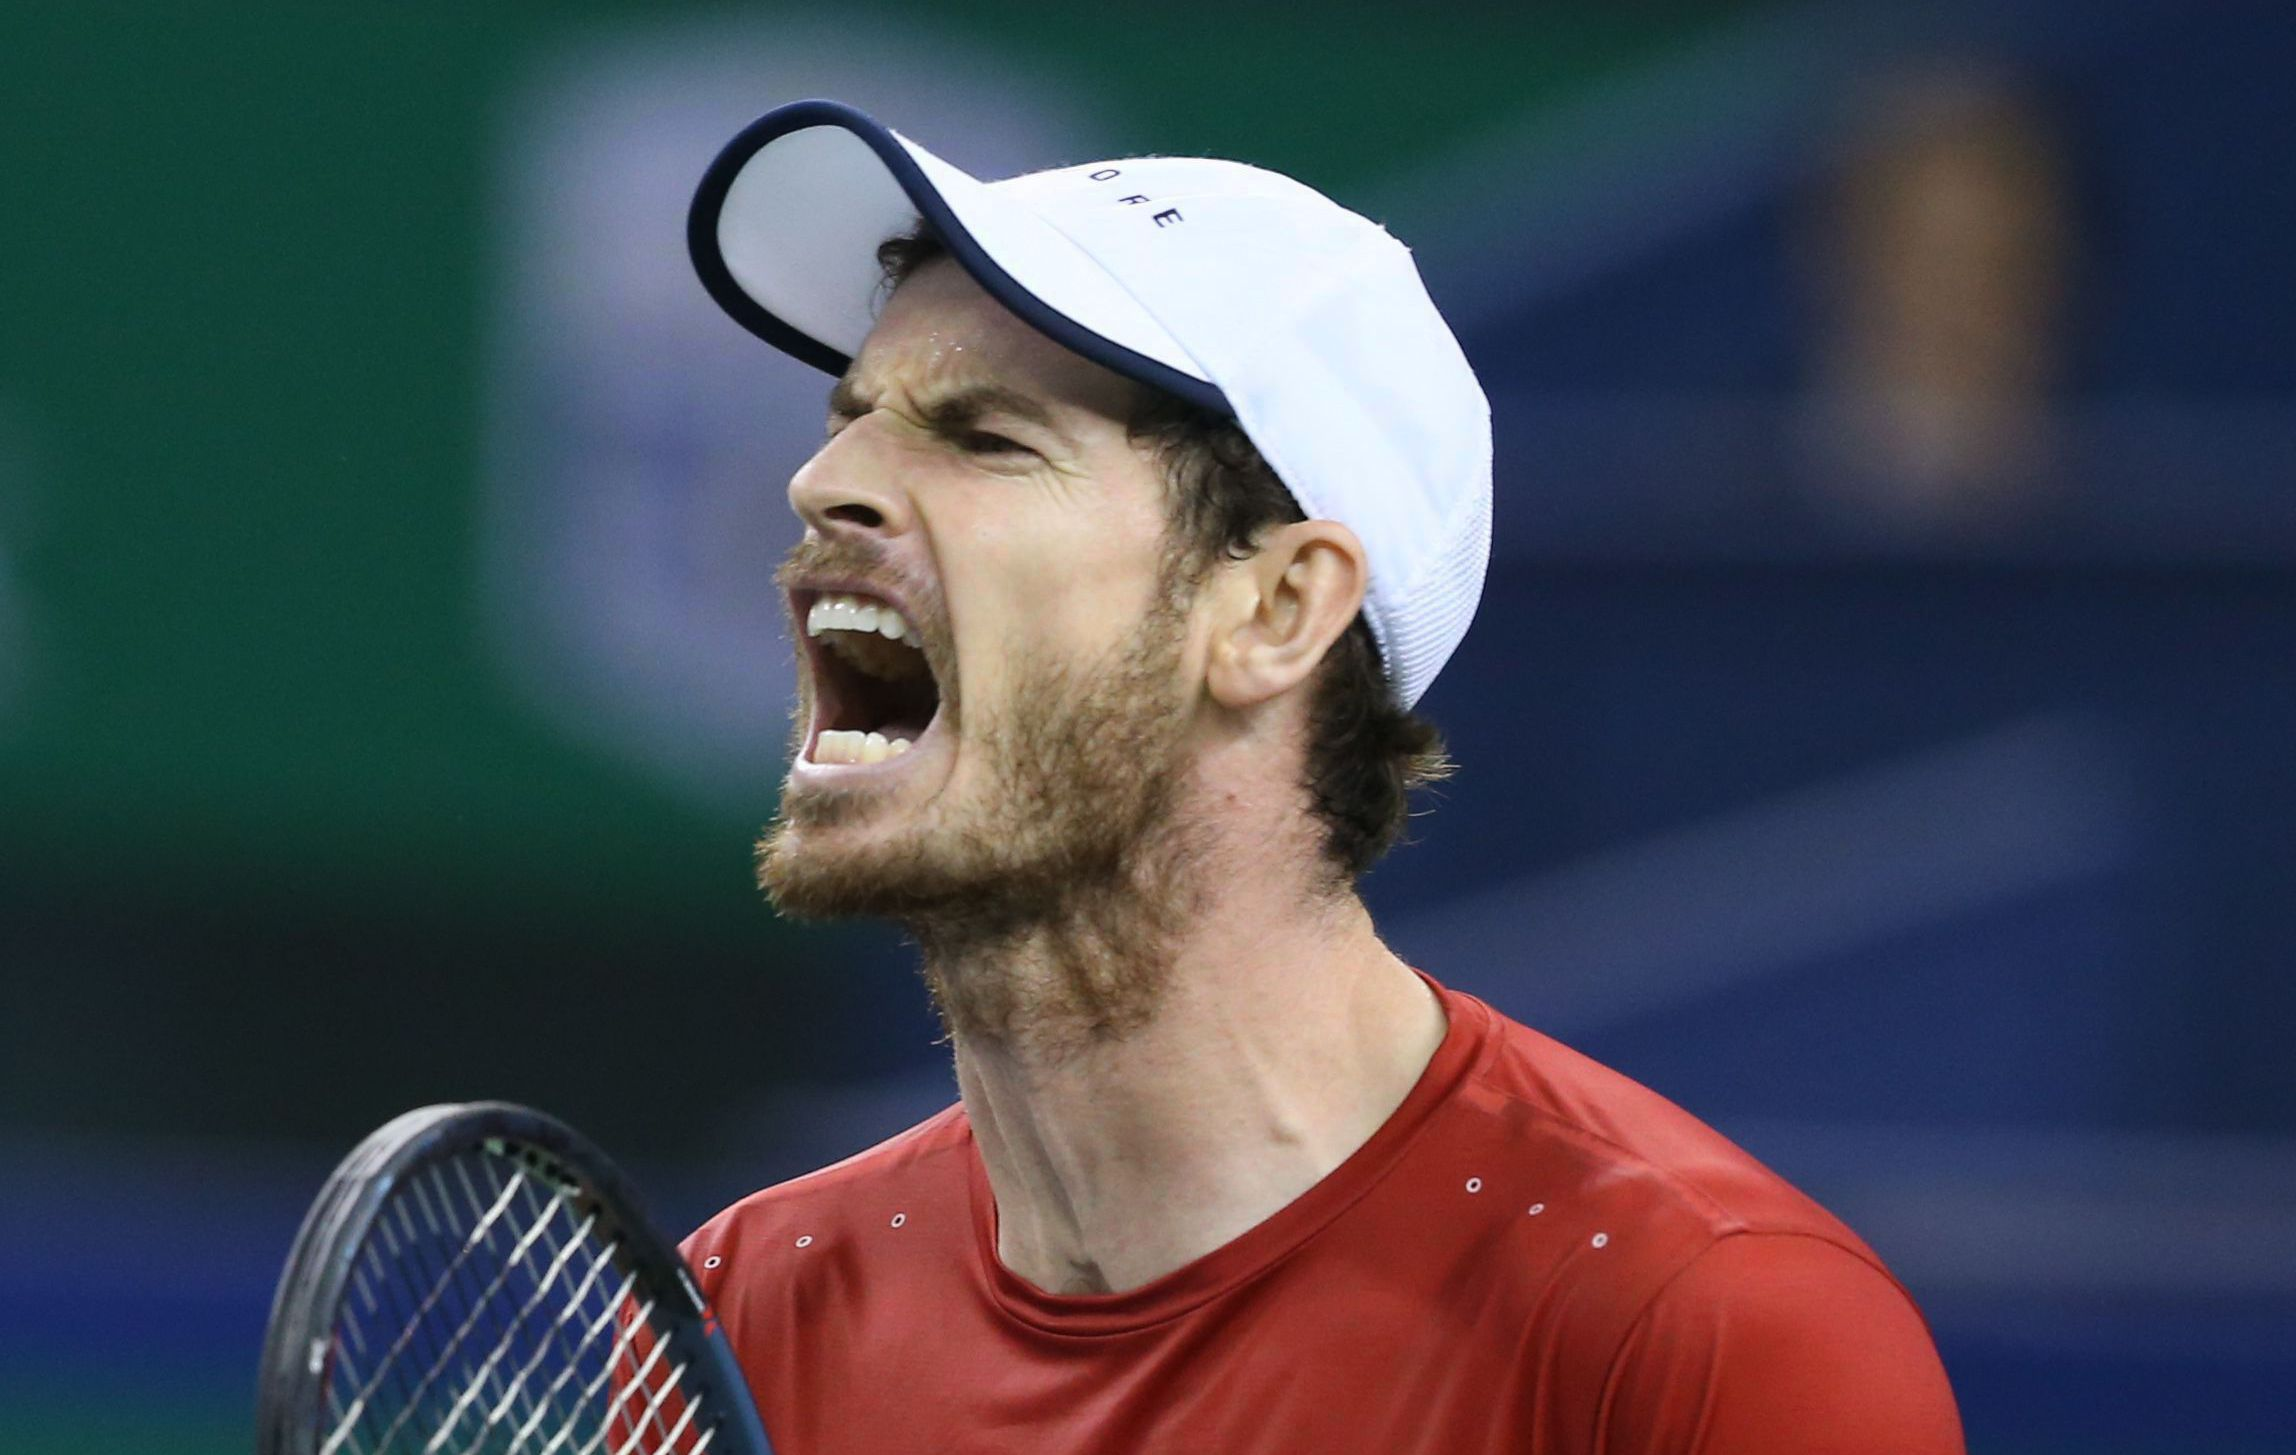 Tennis - ATP - Andy Murray, l'émouvant come-back